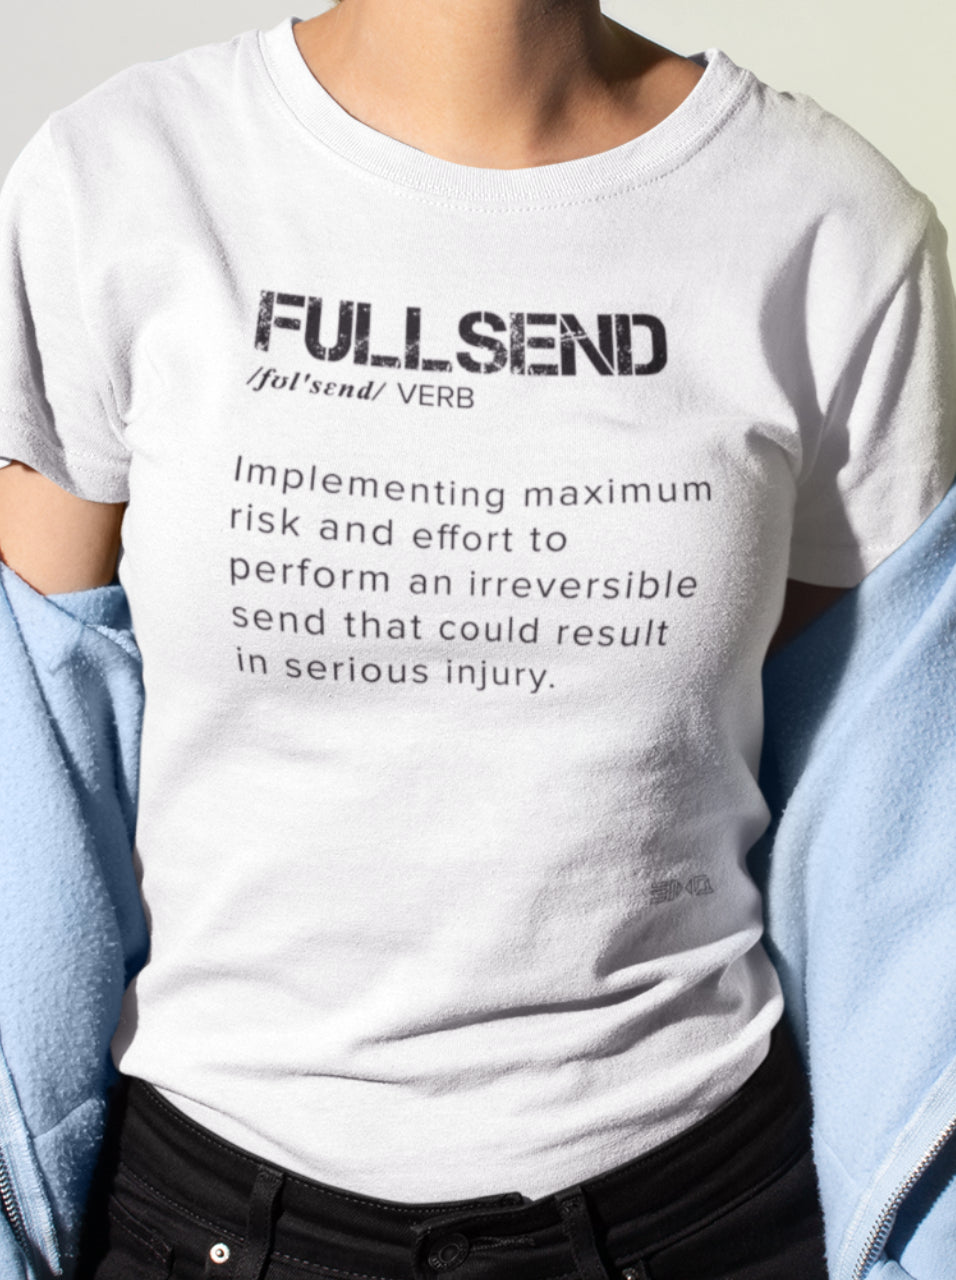 FullSend Definition Women's Slim Tee